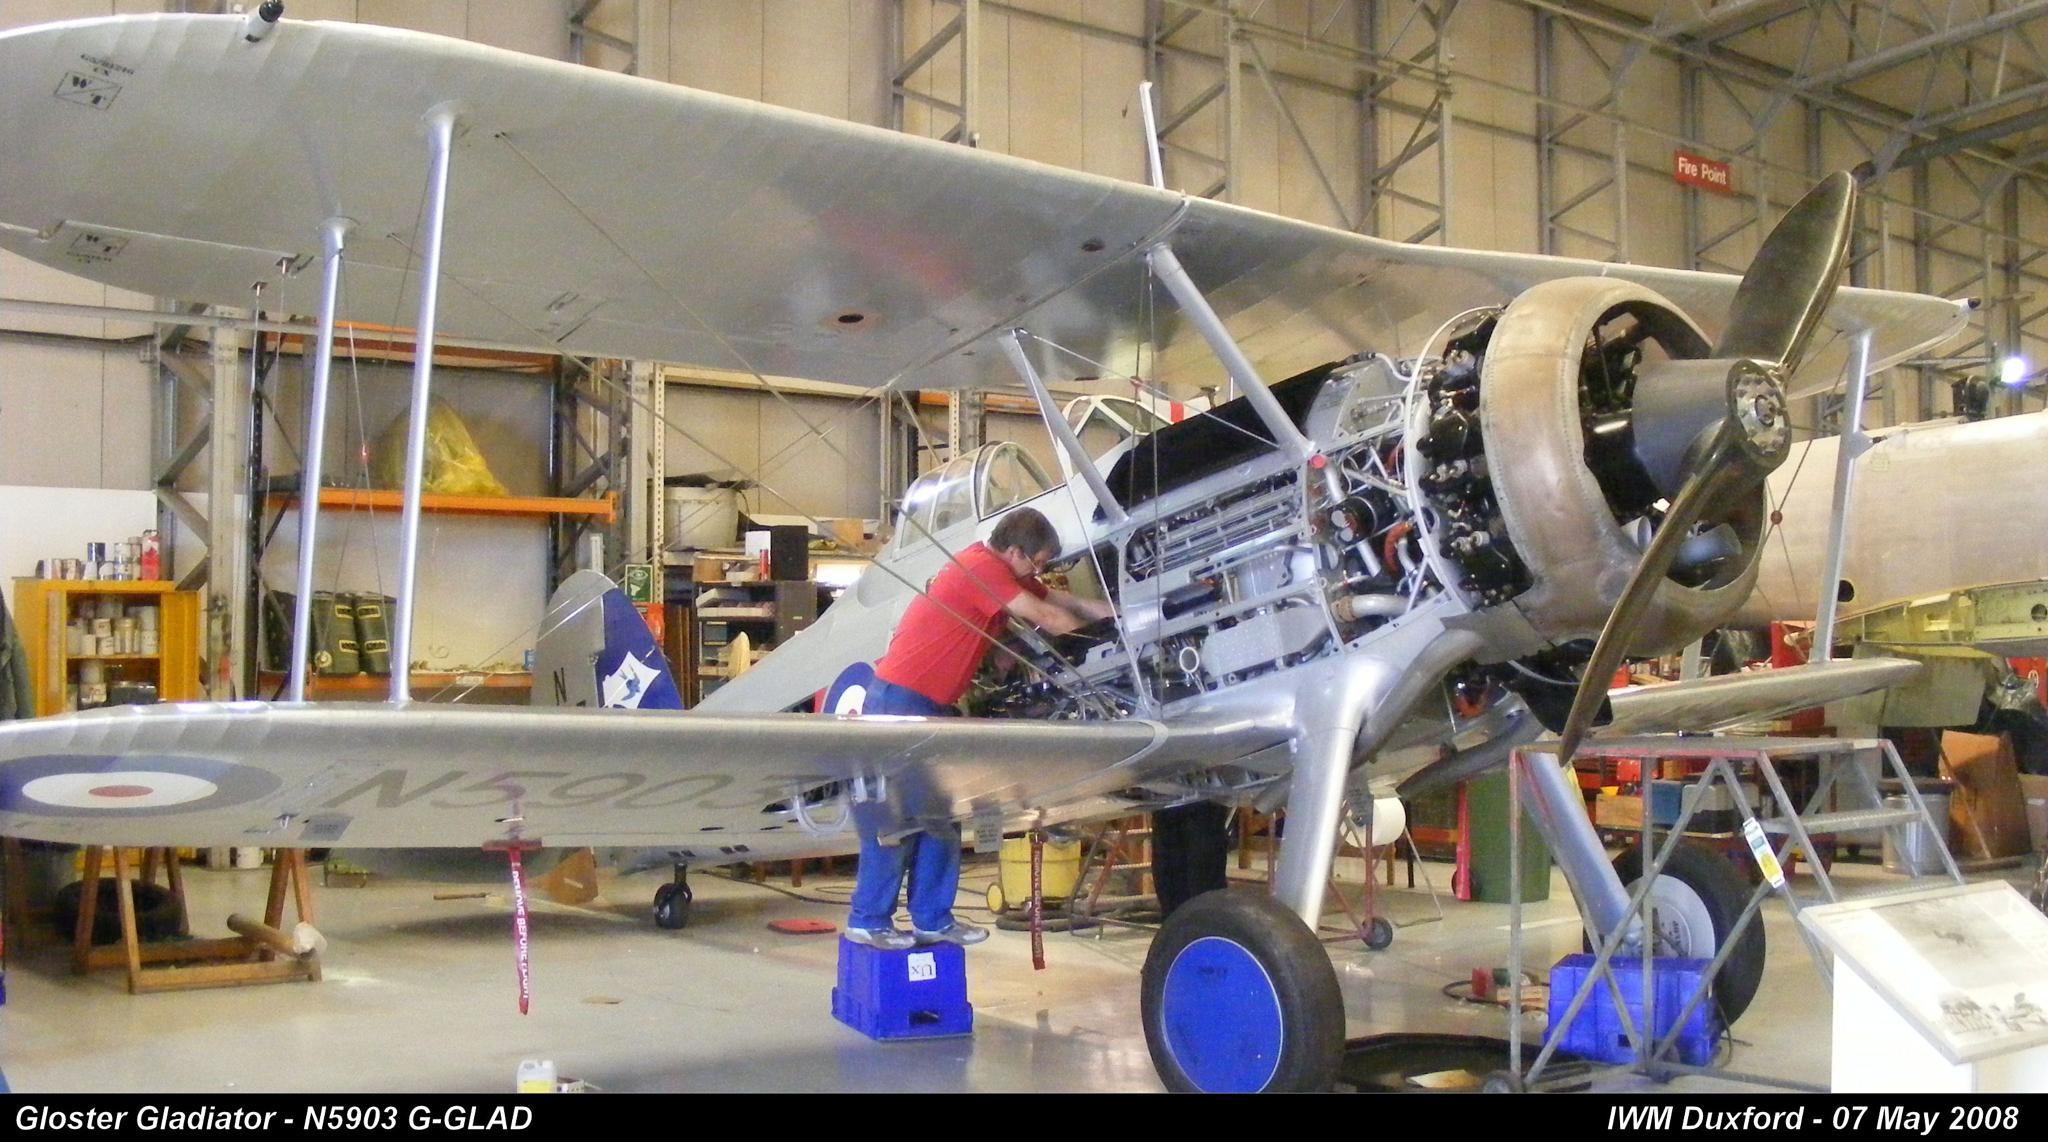 Gloster Gladiator - N5903 G-GLAD by Graham Wood Photo Collection